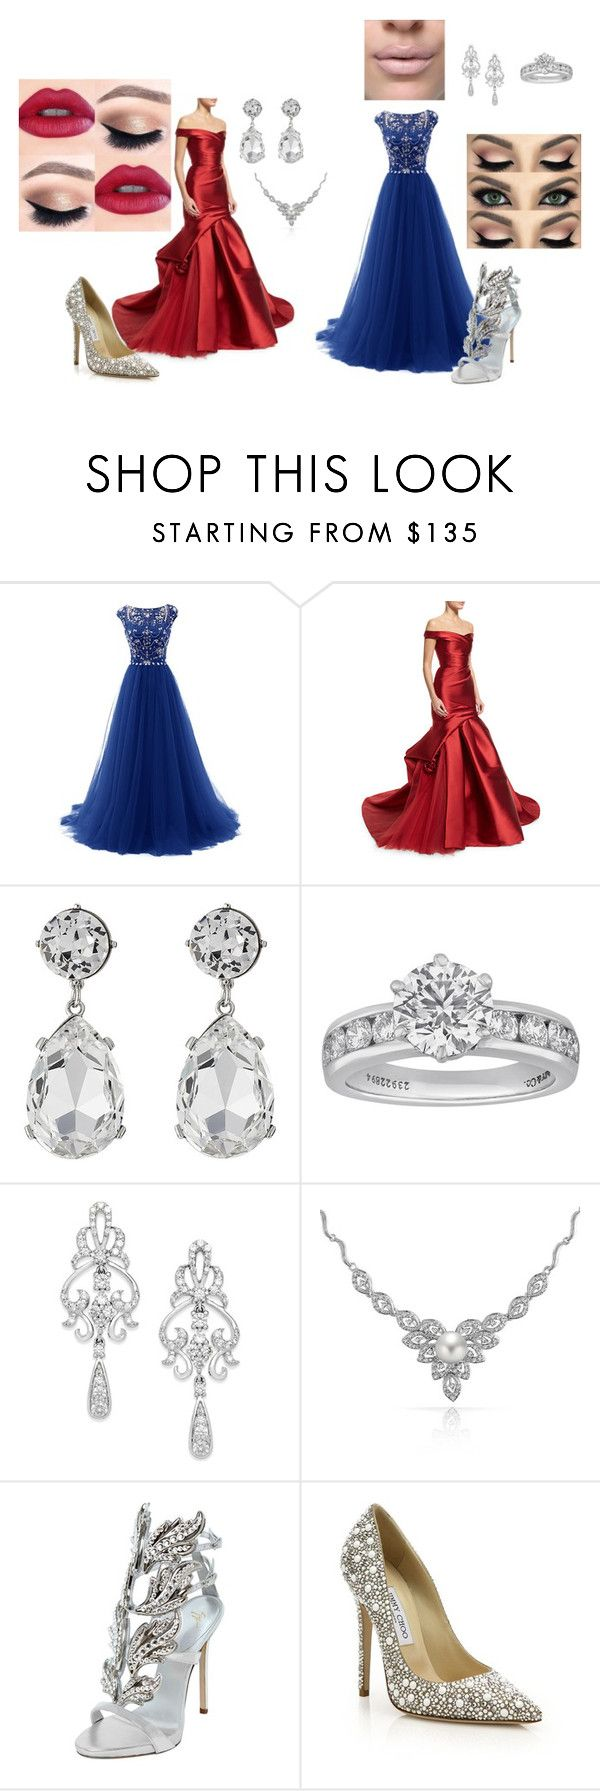 """""""Etiqueta rigurosa"""" by the197518 ❤ liked on Polyvore featuring Monique Lhuillier, Kenneth Jay Lane, Tiffany & Co., Wrapped In Love, Bling Jewelry, Giuseppe Zanotti and Jimmy Choo"""